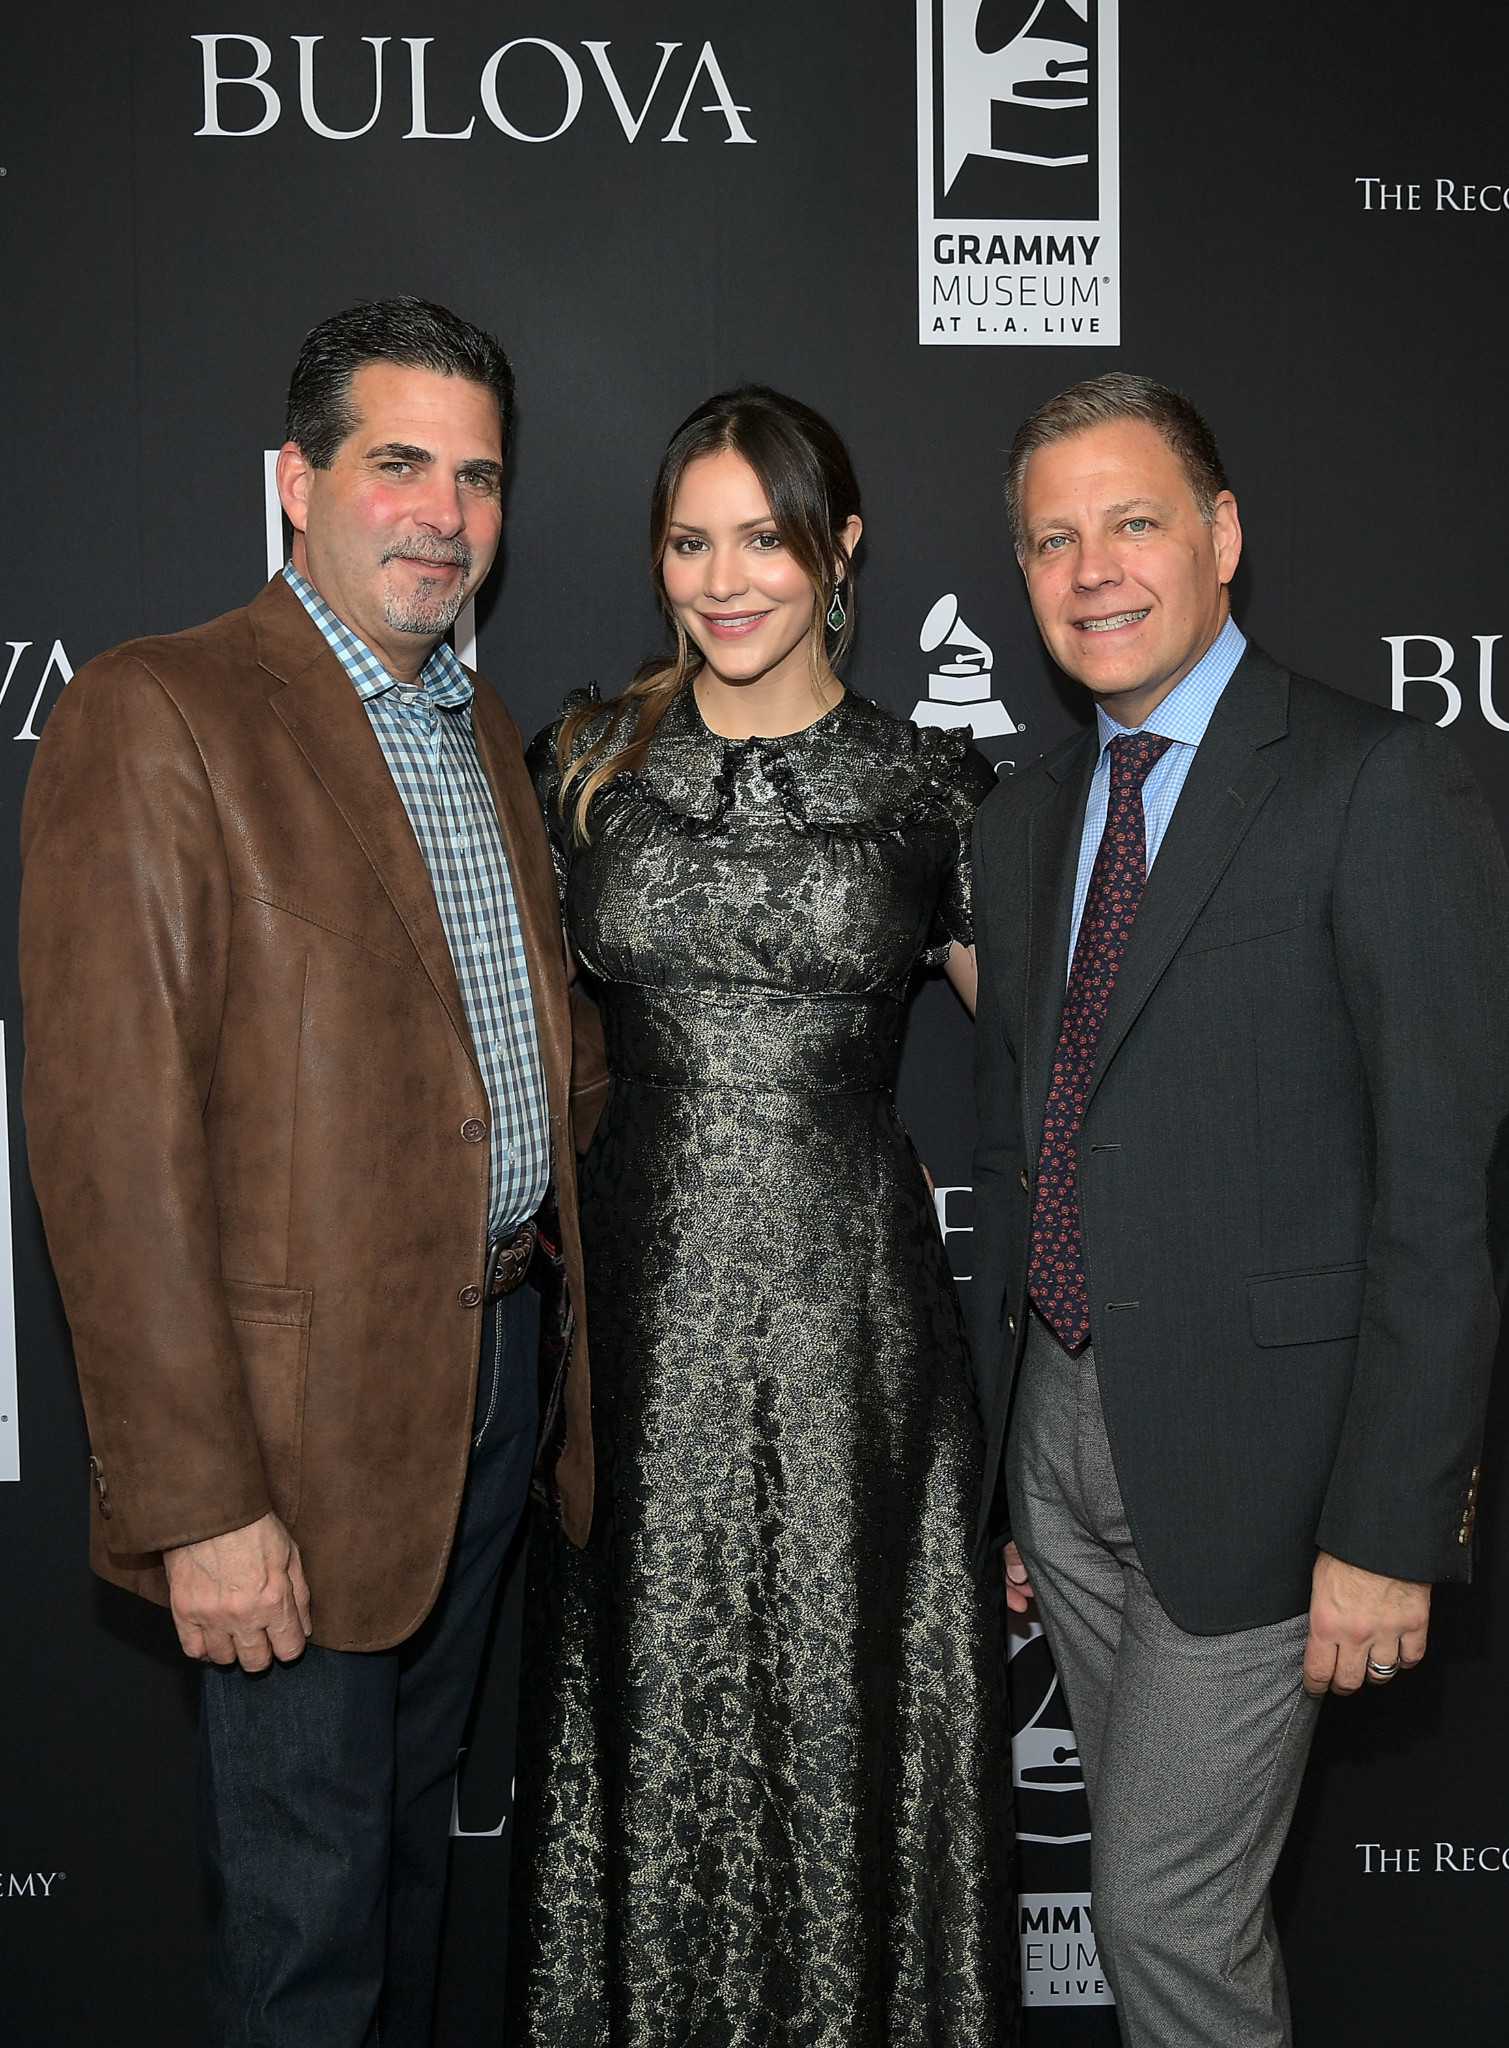 LOS ANGELES, CA - FEBRUARY 11:  (L-R) President of Citizen Watch America, Bulova Jeffrey Cohen, Katharine McPhee and Managing Director Bulova U.S. Michael Benavente attend the Bulova x GRAMMY Brunch in the Clive Davis Theater at The GRAMMY Museum on February 11, 2017 in Los Angeles, California.  (Photo by Charley Gallay/WireImage)